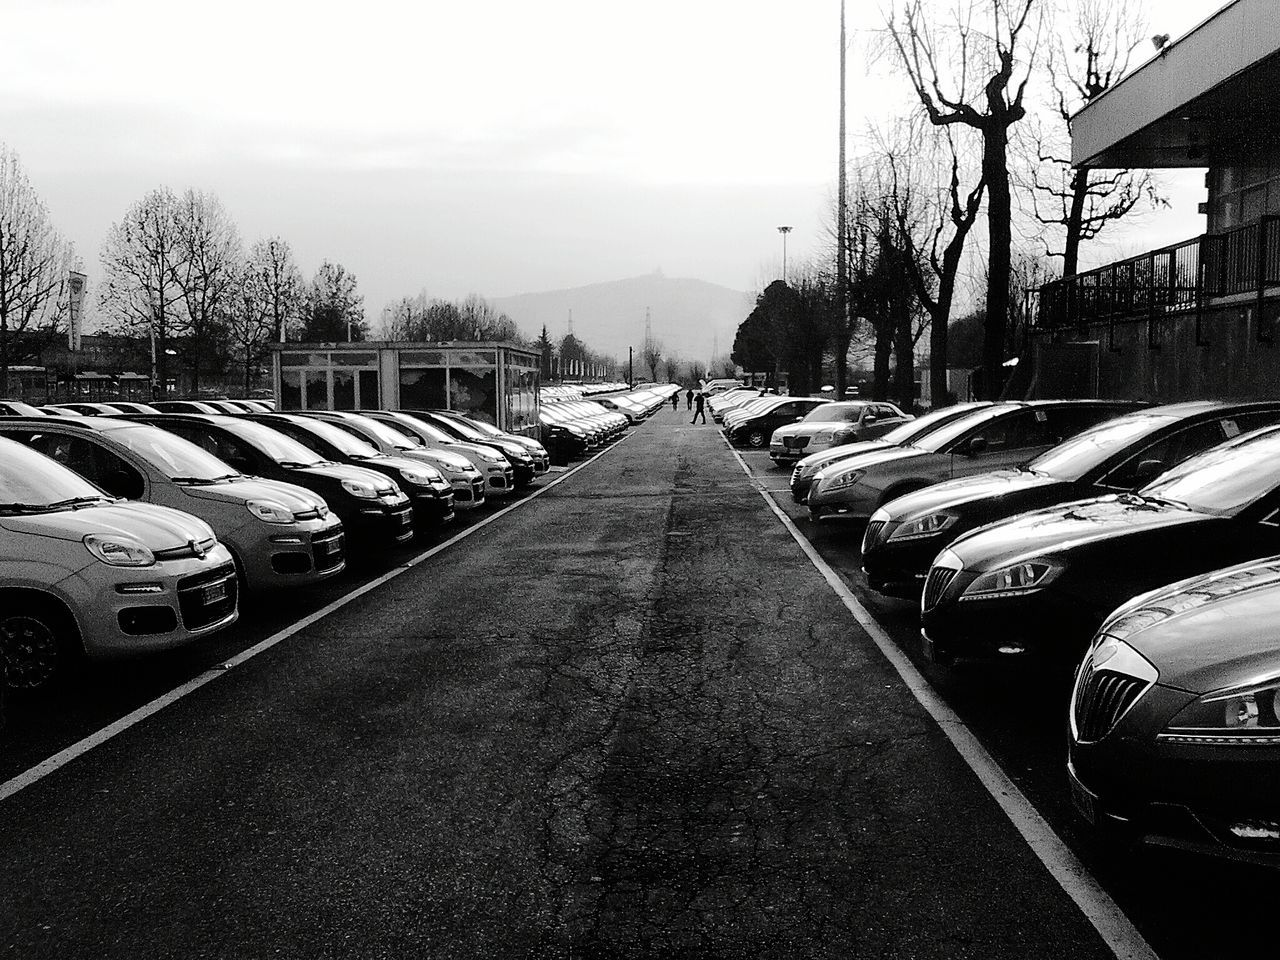 transportation, car, land vehicle, mode of transport, in a row, tree, road, bare tree, day, stationary, no people, outdoors, built structure, architecture, sky